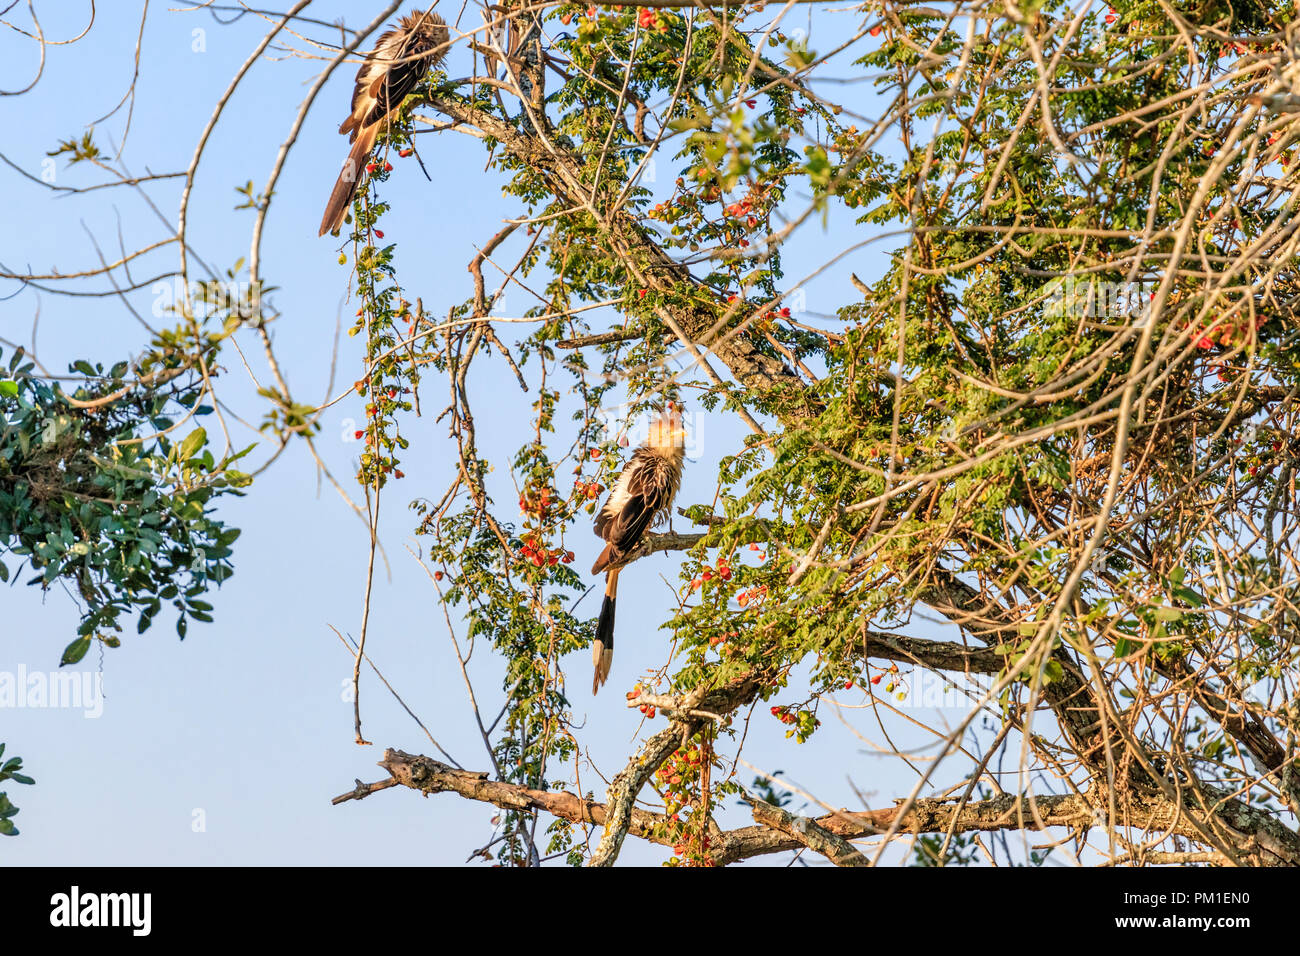 bird in tree at the end of the day, scientific name Guira guira - Stock Image